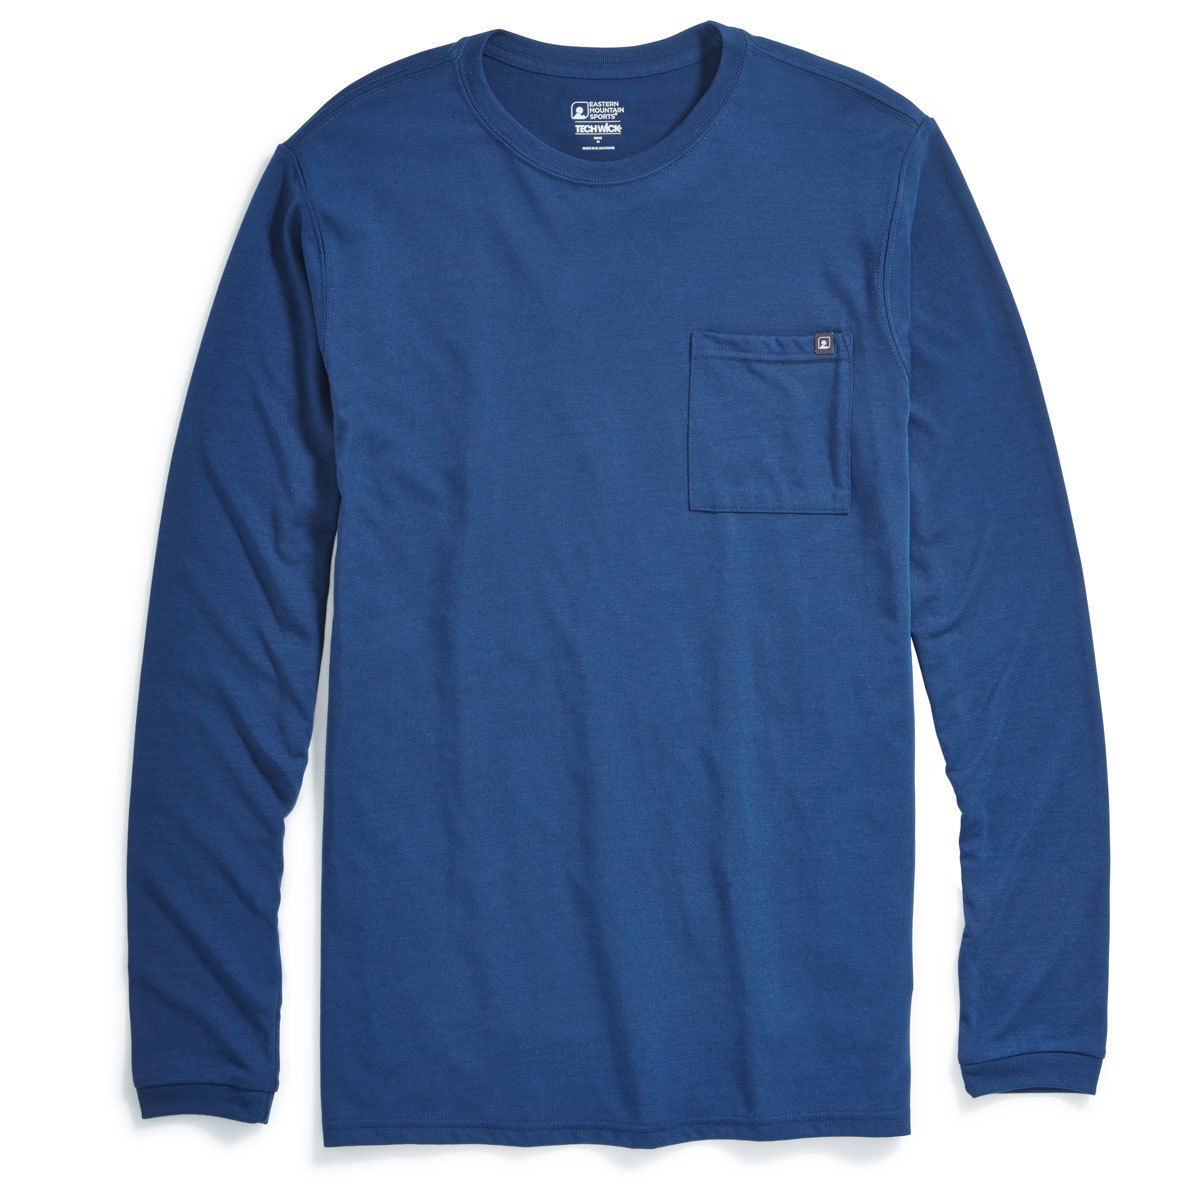 Emsa(R) Men's Techwicka(R) Vital Pocket Long-Sleeve Tee - Blue, XL